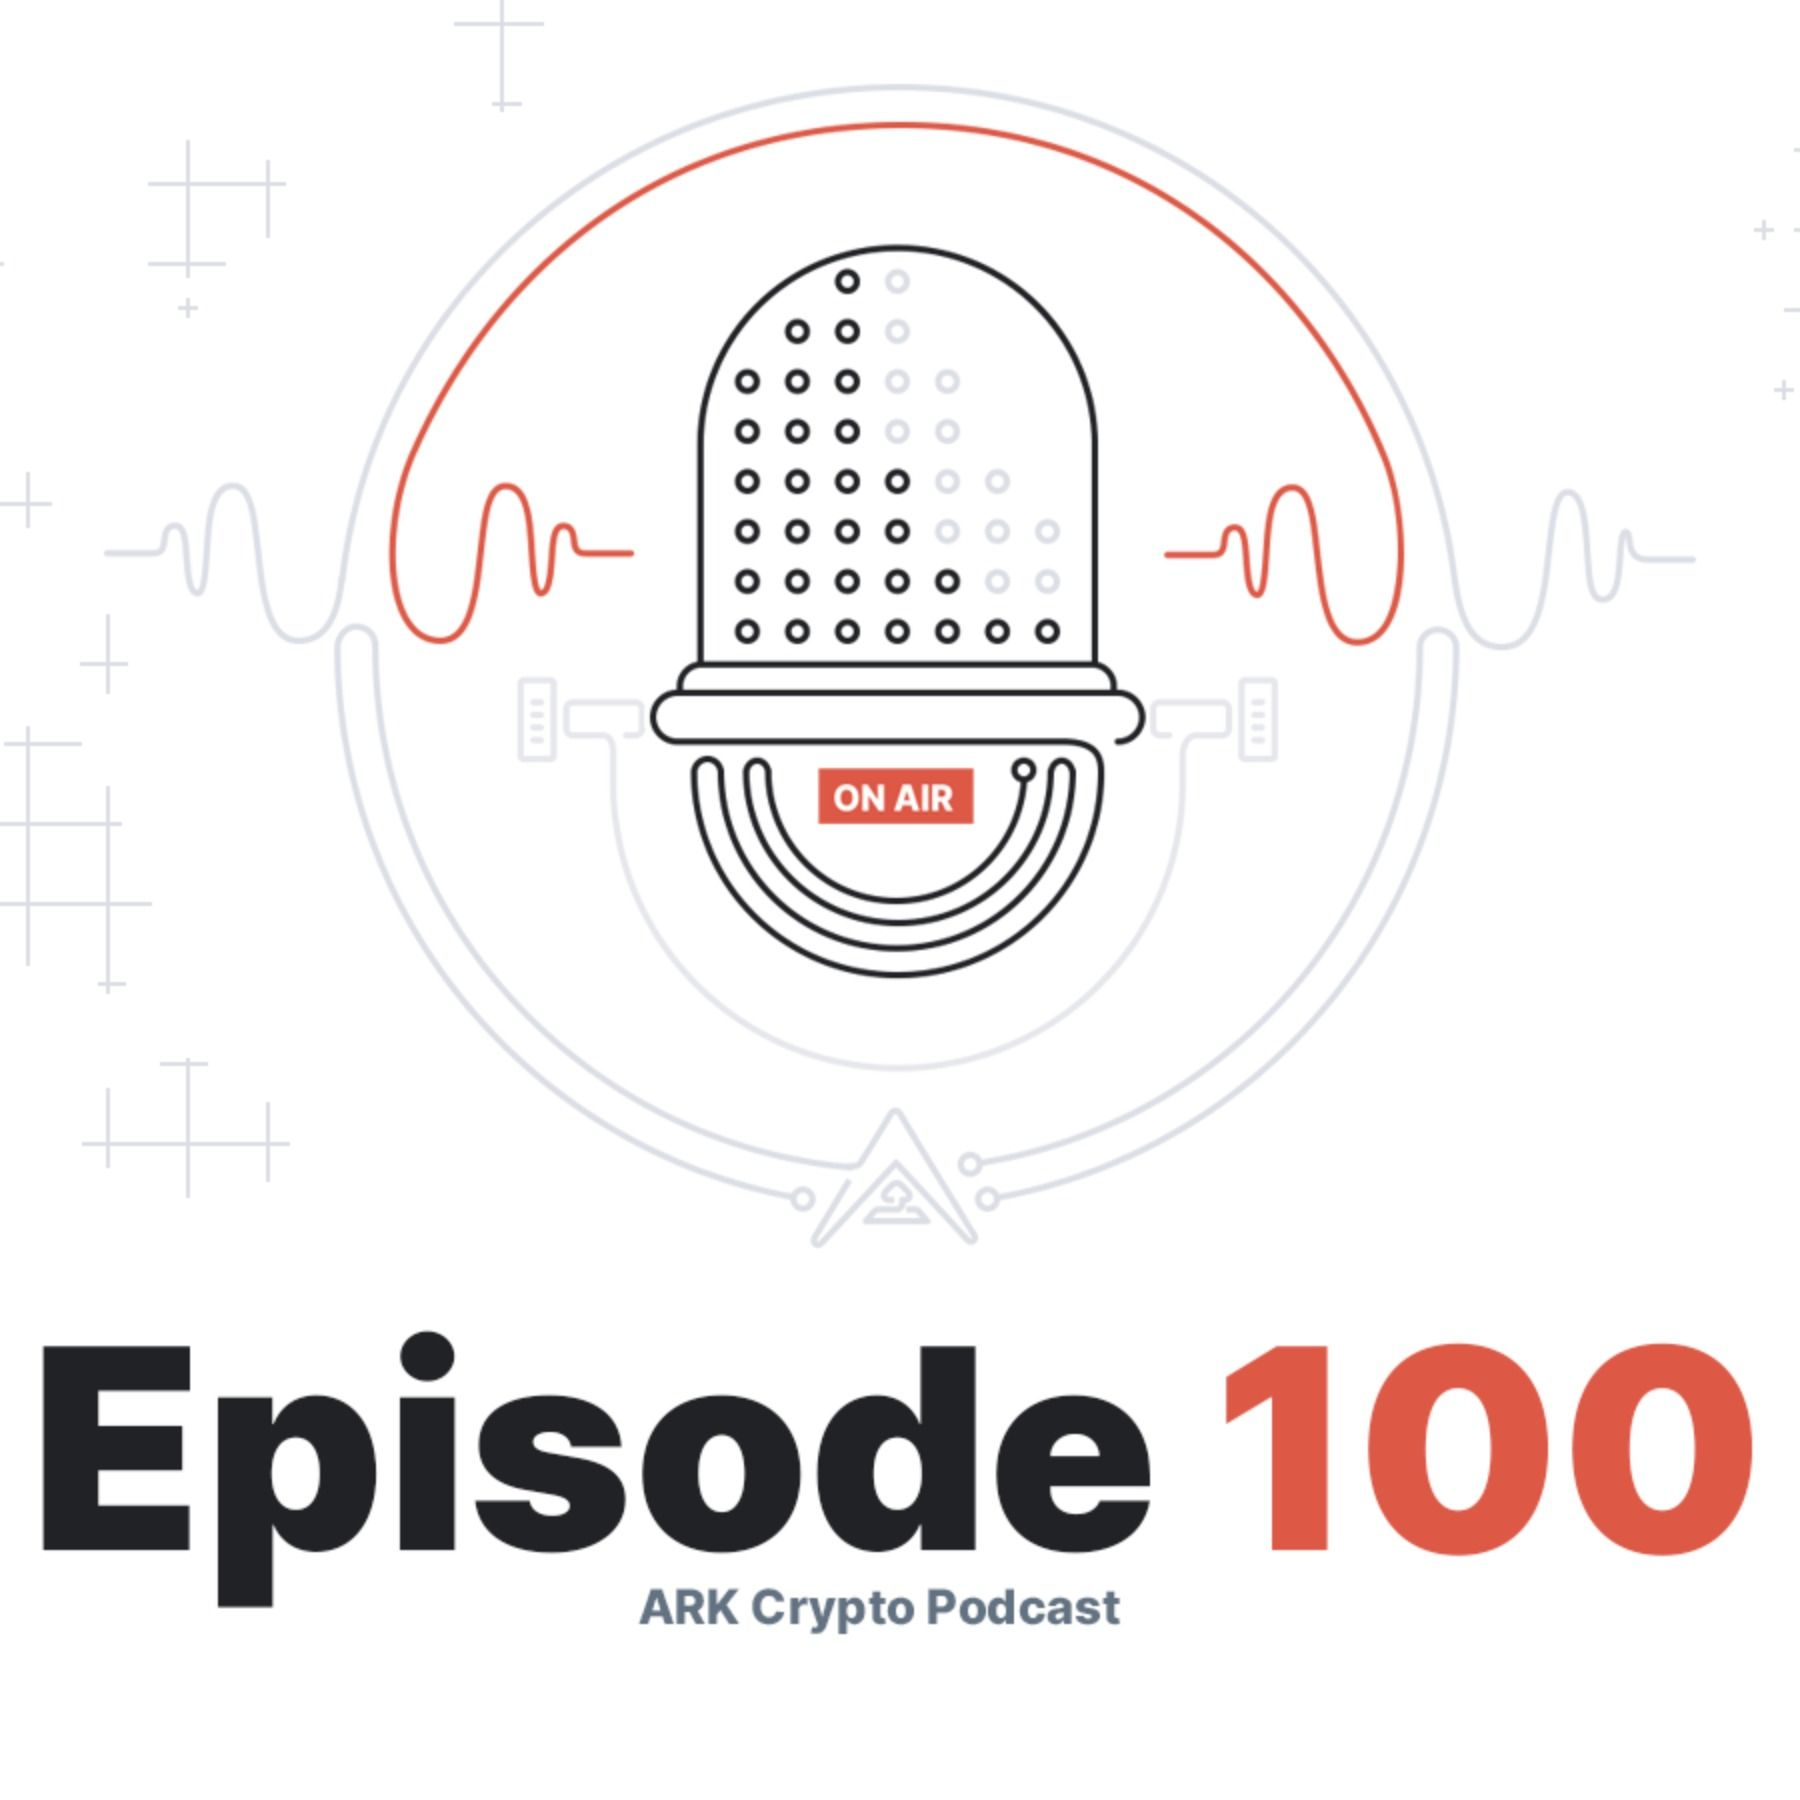 Episode 100 Special and New Contest Launch with Over 1300 USD Worth of Prizes - ARK Crypto Podcast #100